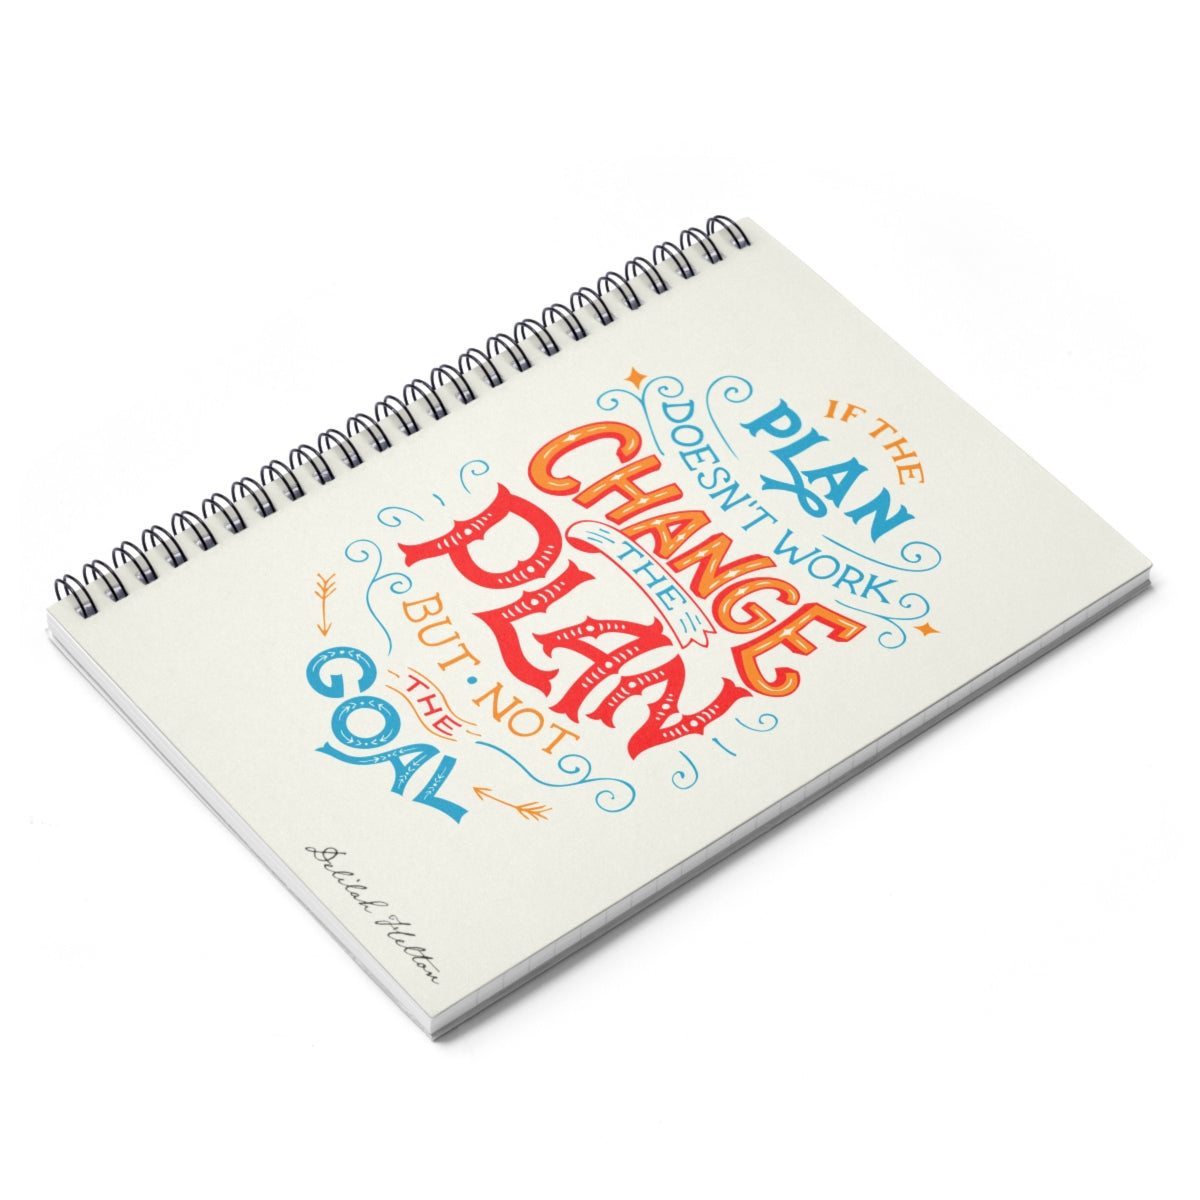 If The Plan Doesn't Work - Spiral Notebook - Ruled Line